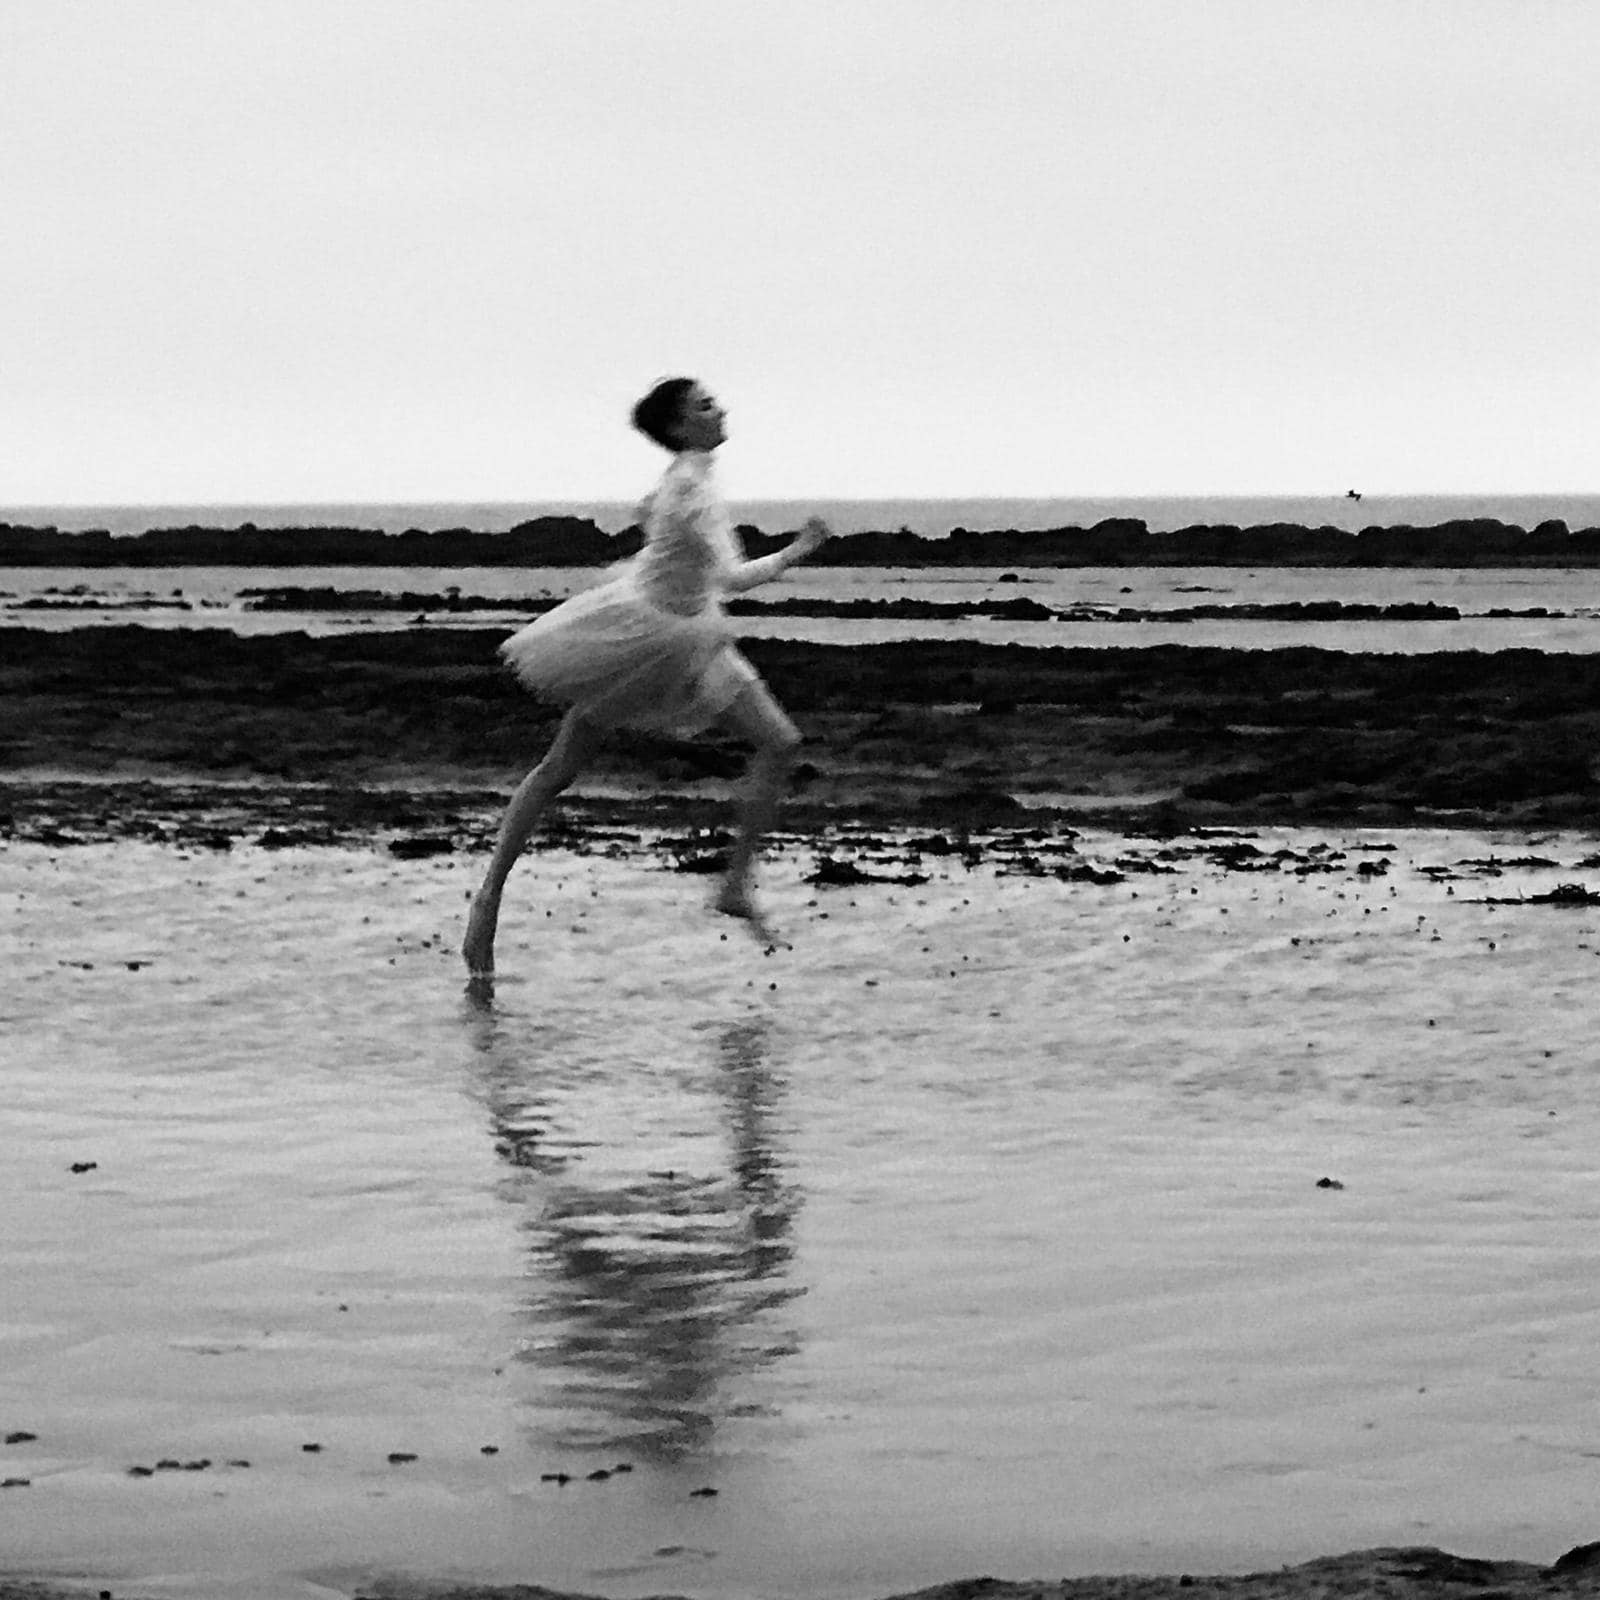 A black and white image of a woman running along a beach